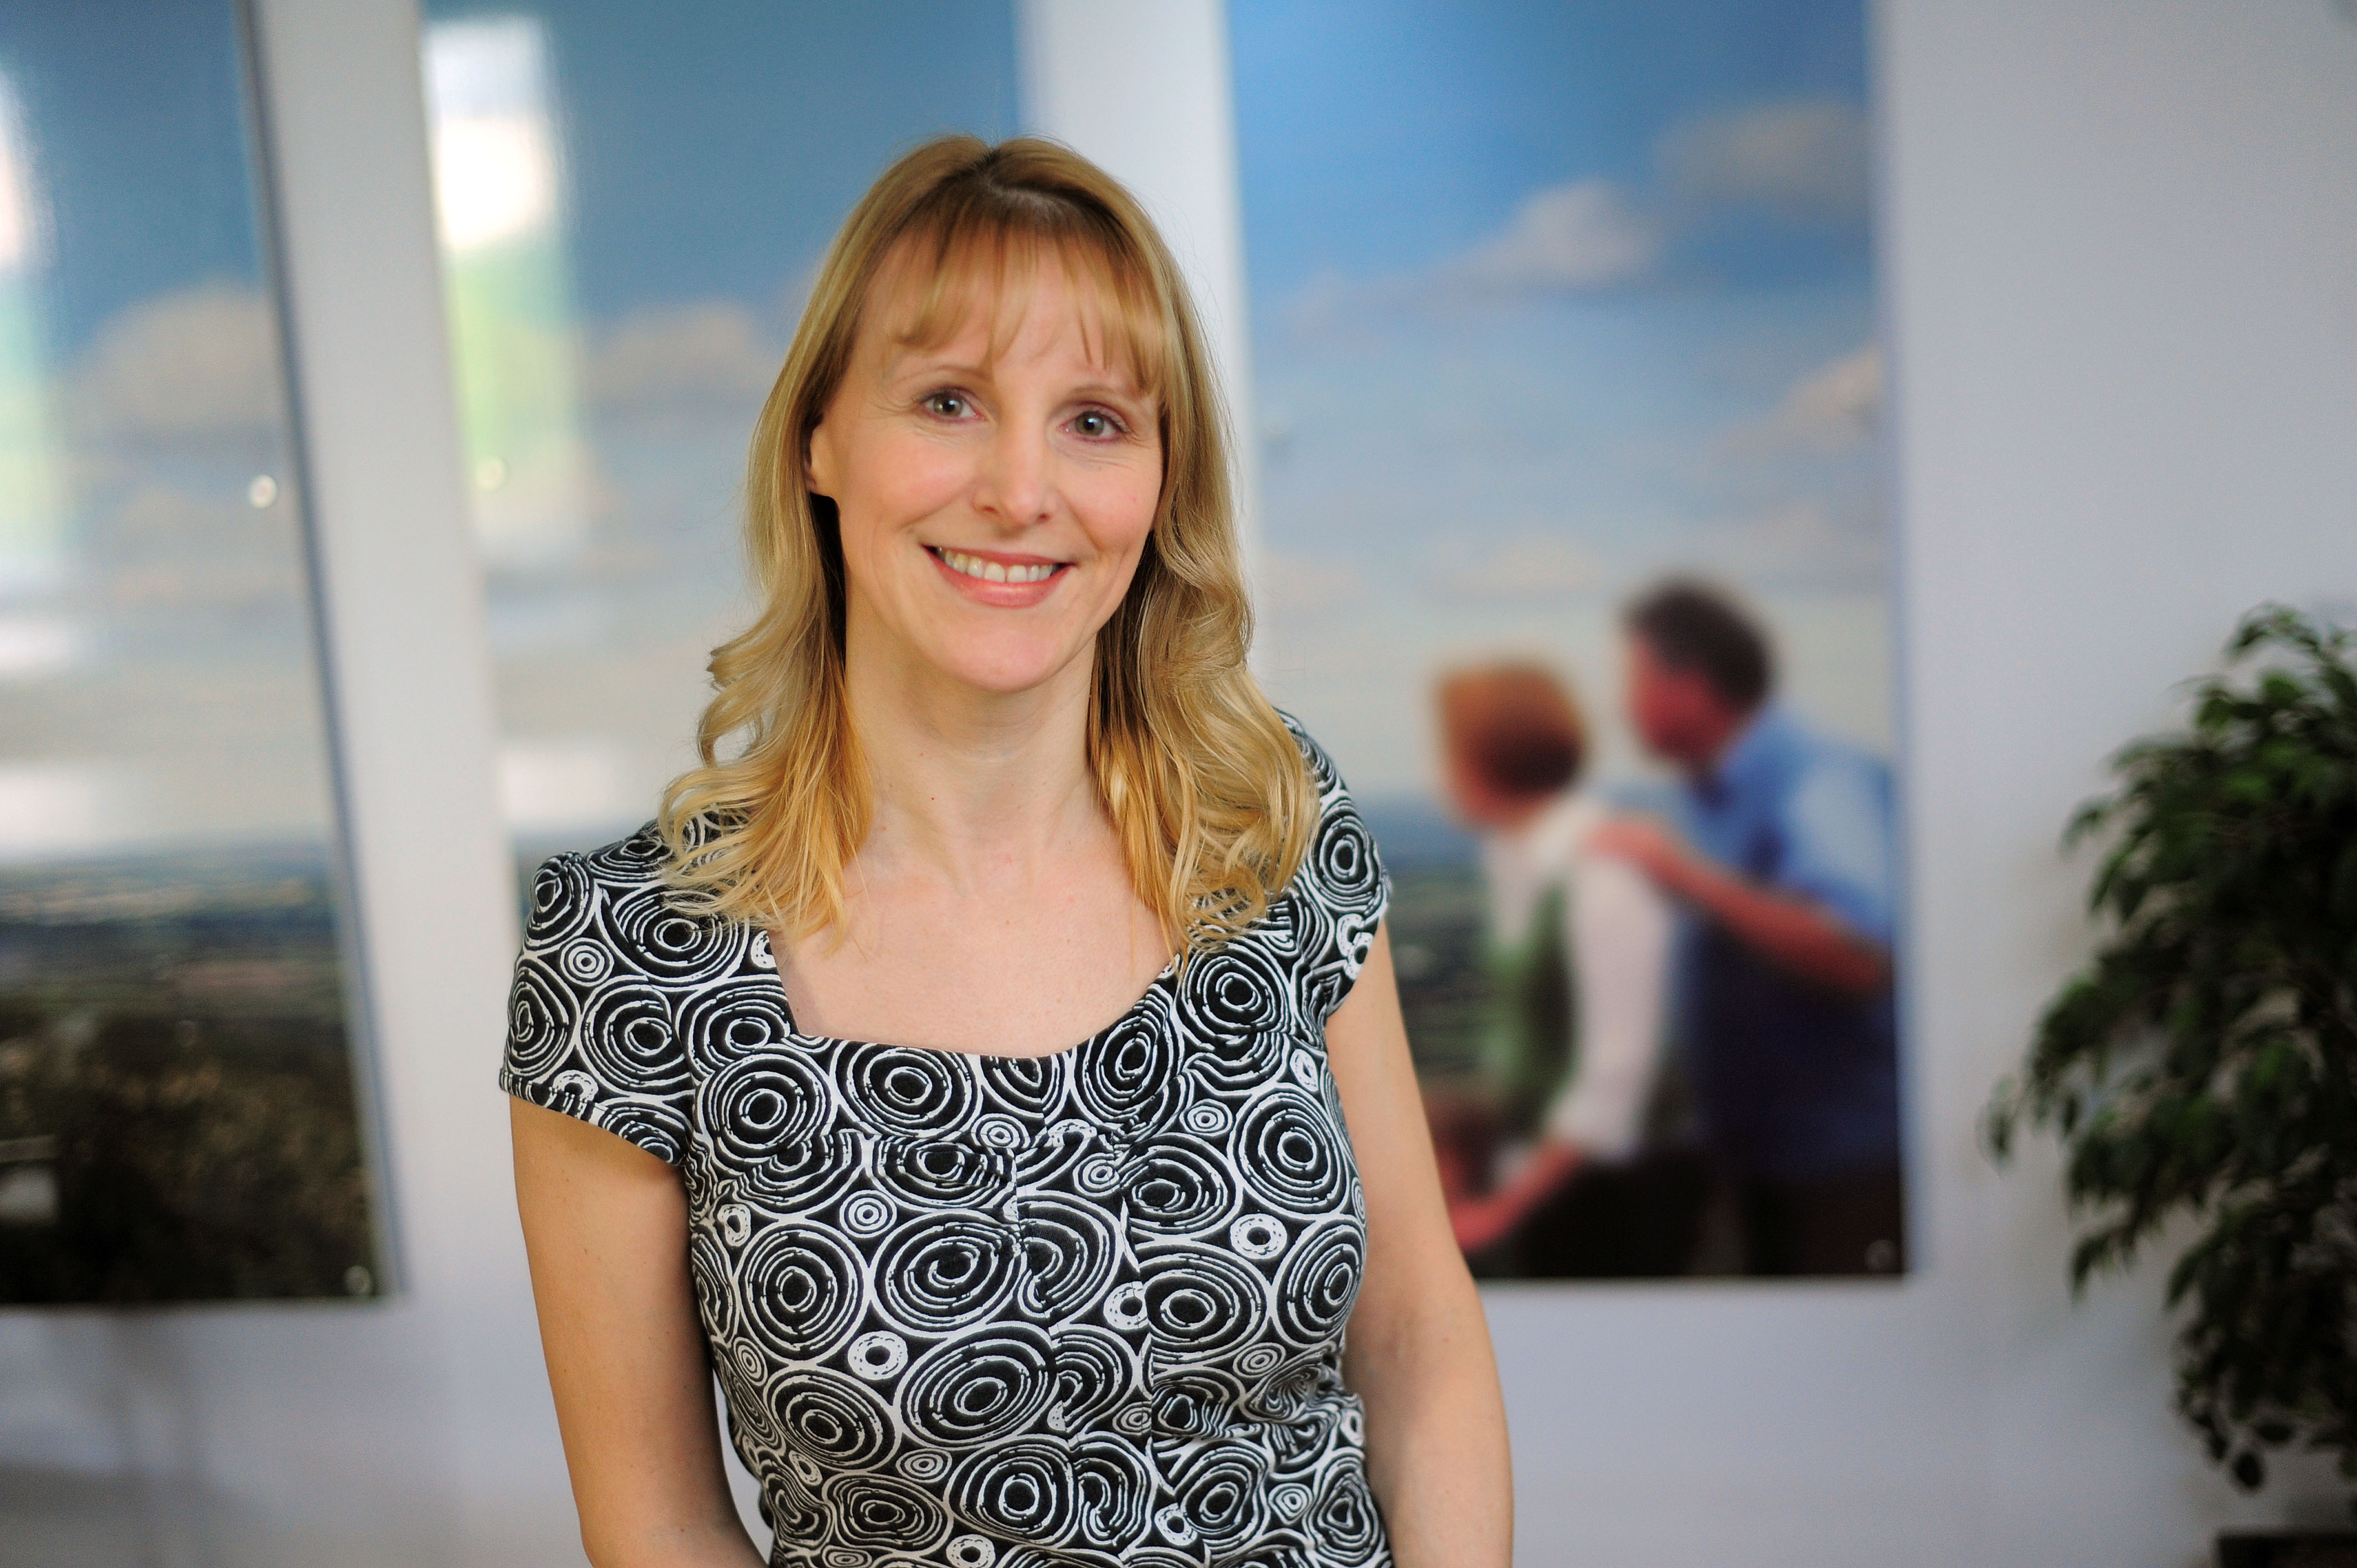 New Coodes business development manager, Lorraine Buse